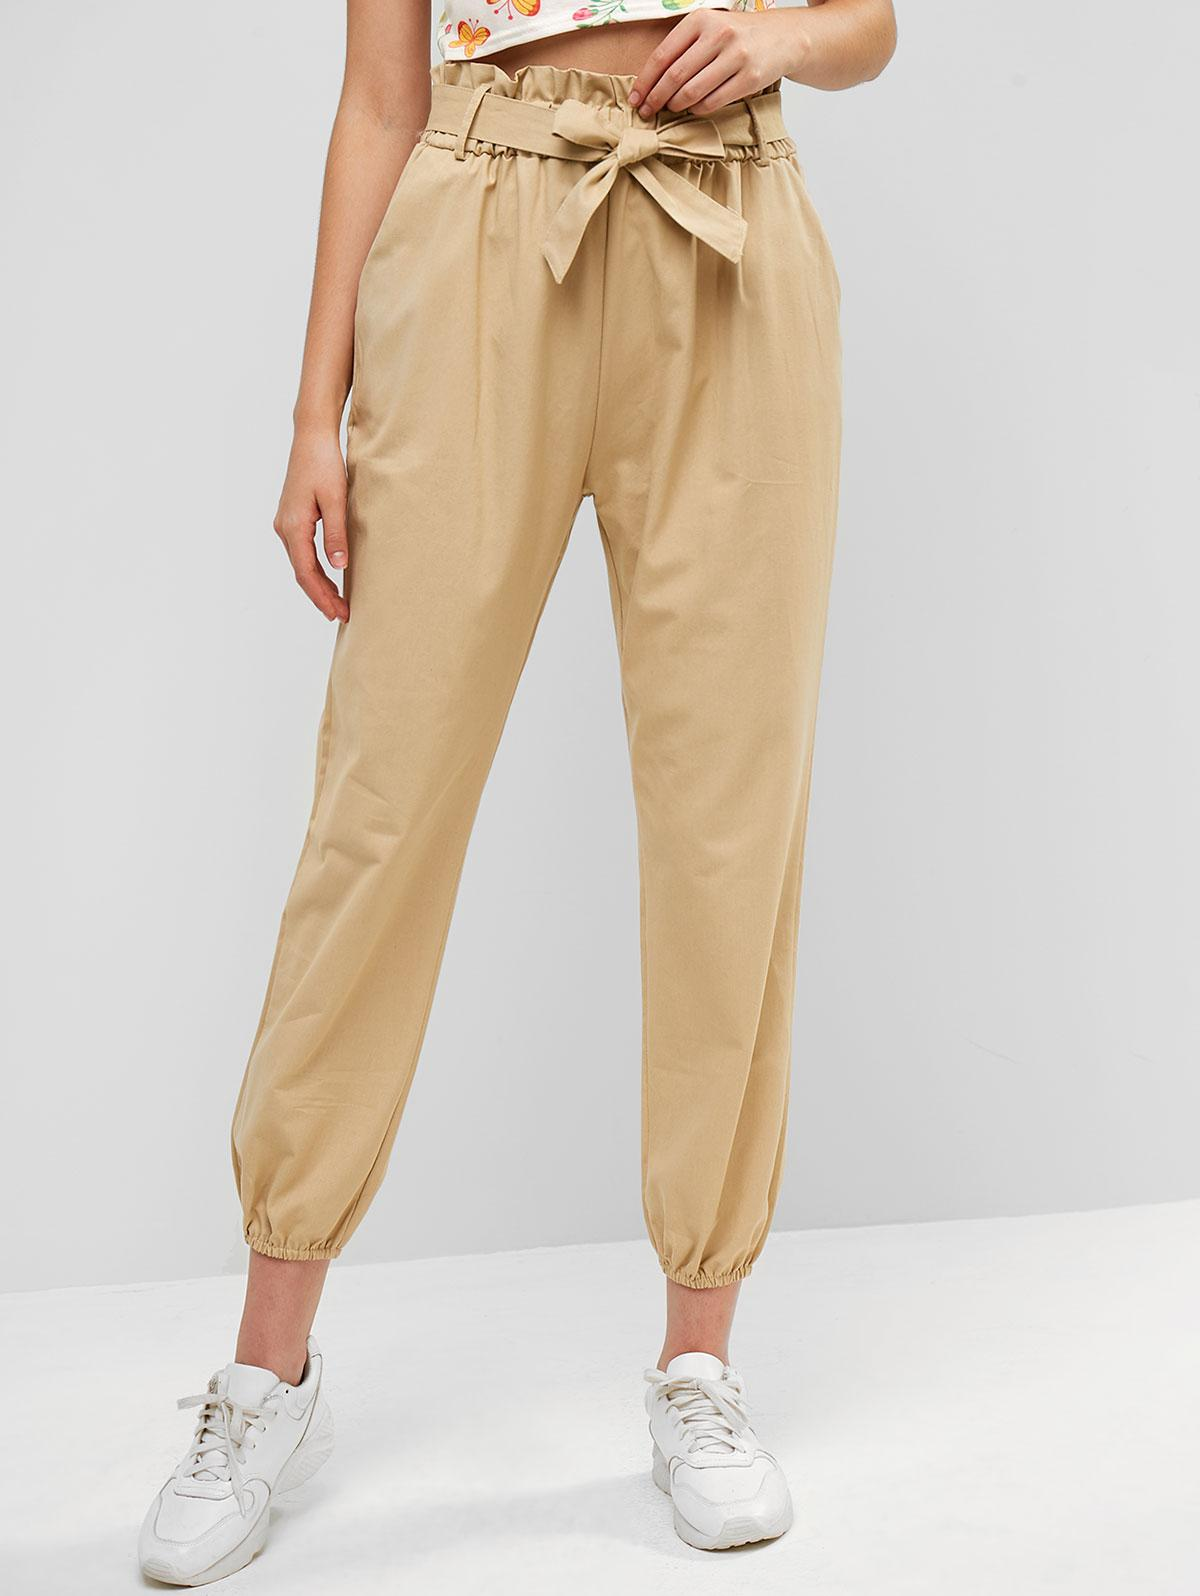 Belted Pockets Paperbag Jogger Pants